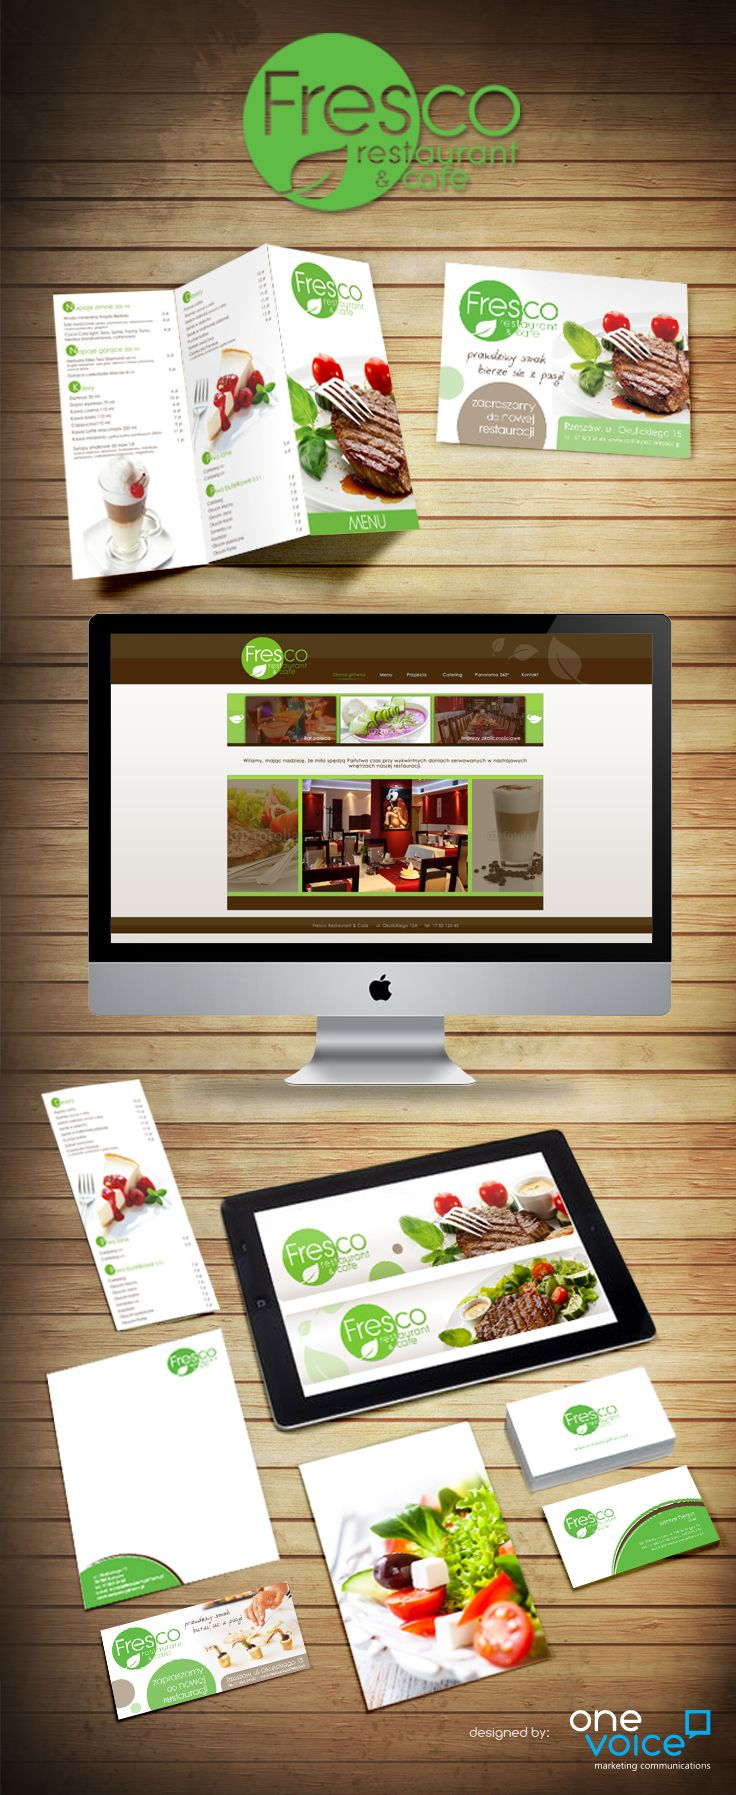 Fresco Restaurant & Cafe.  Naming, logo, web design, promotional materials